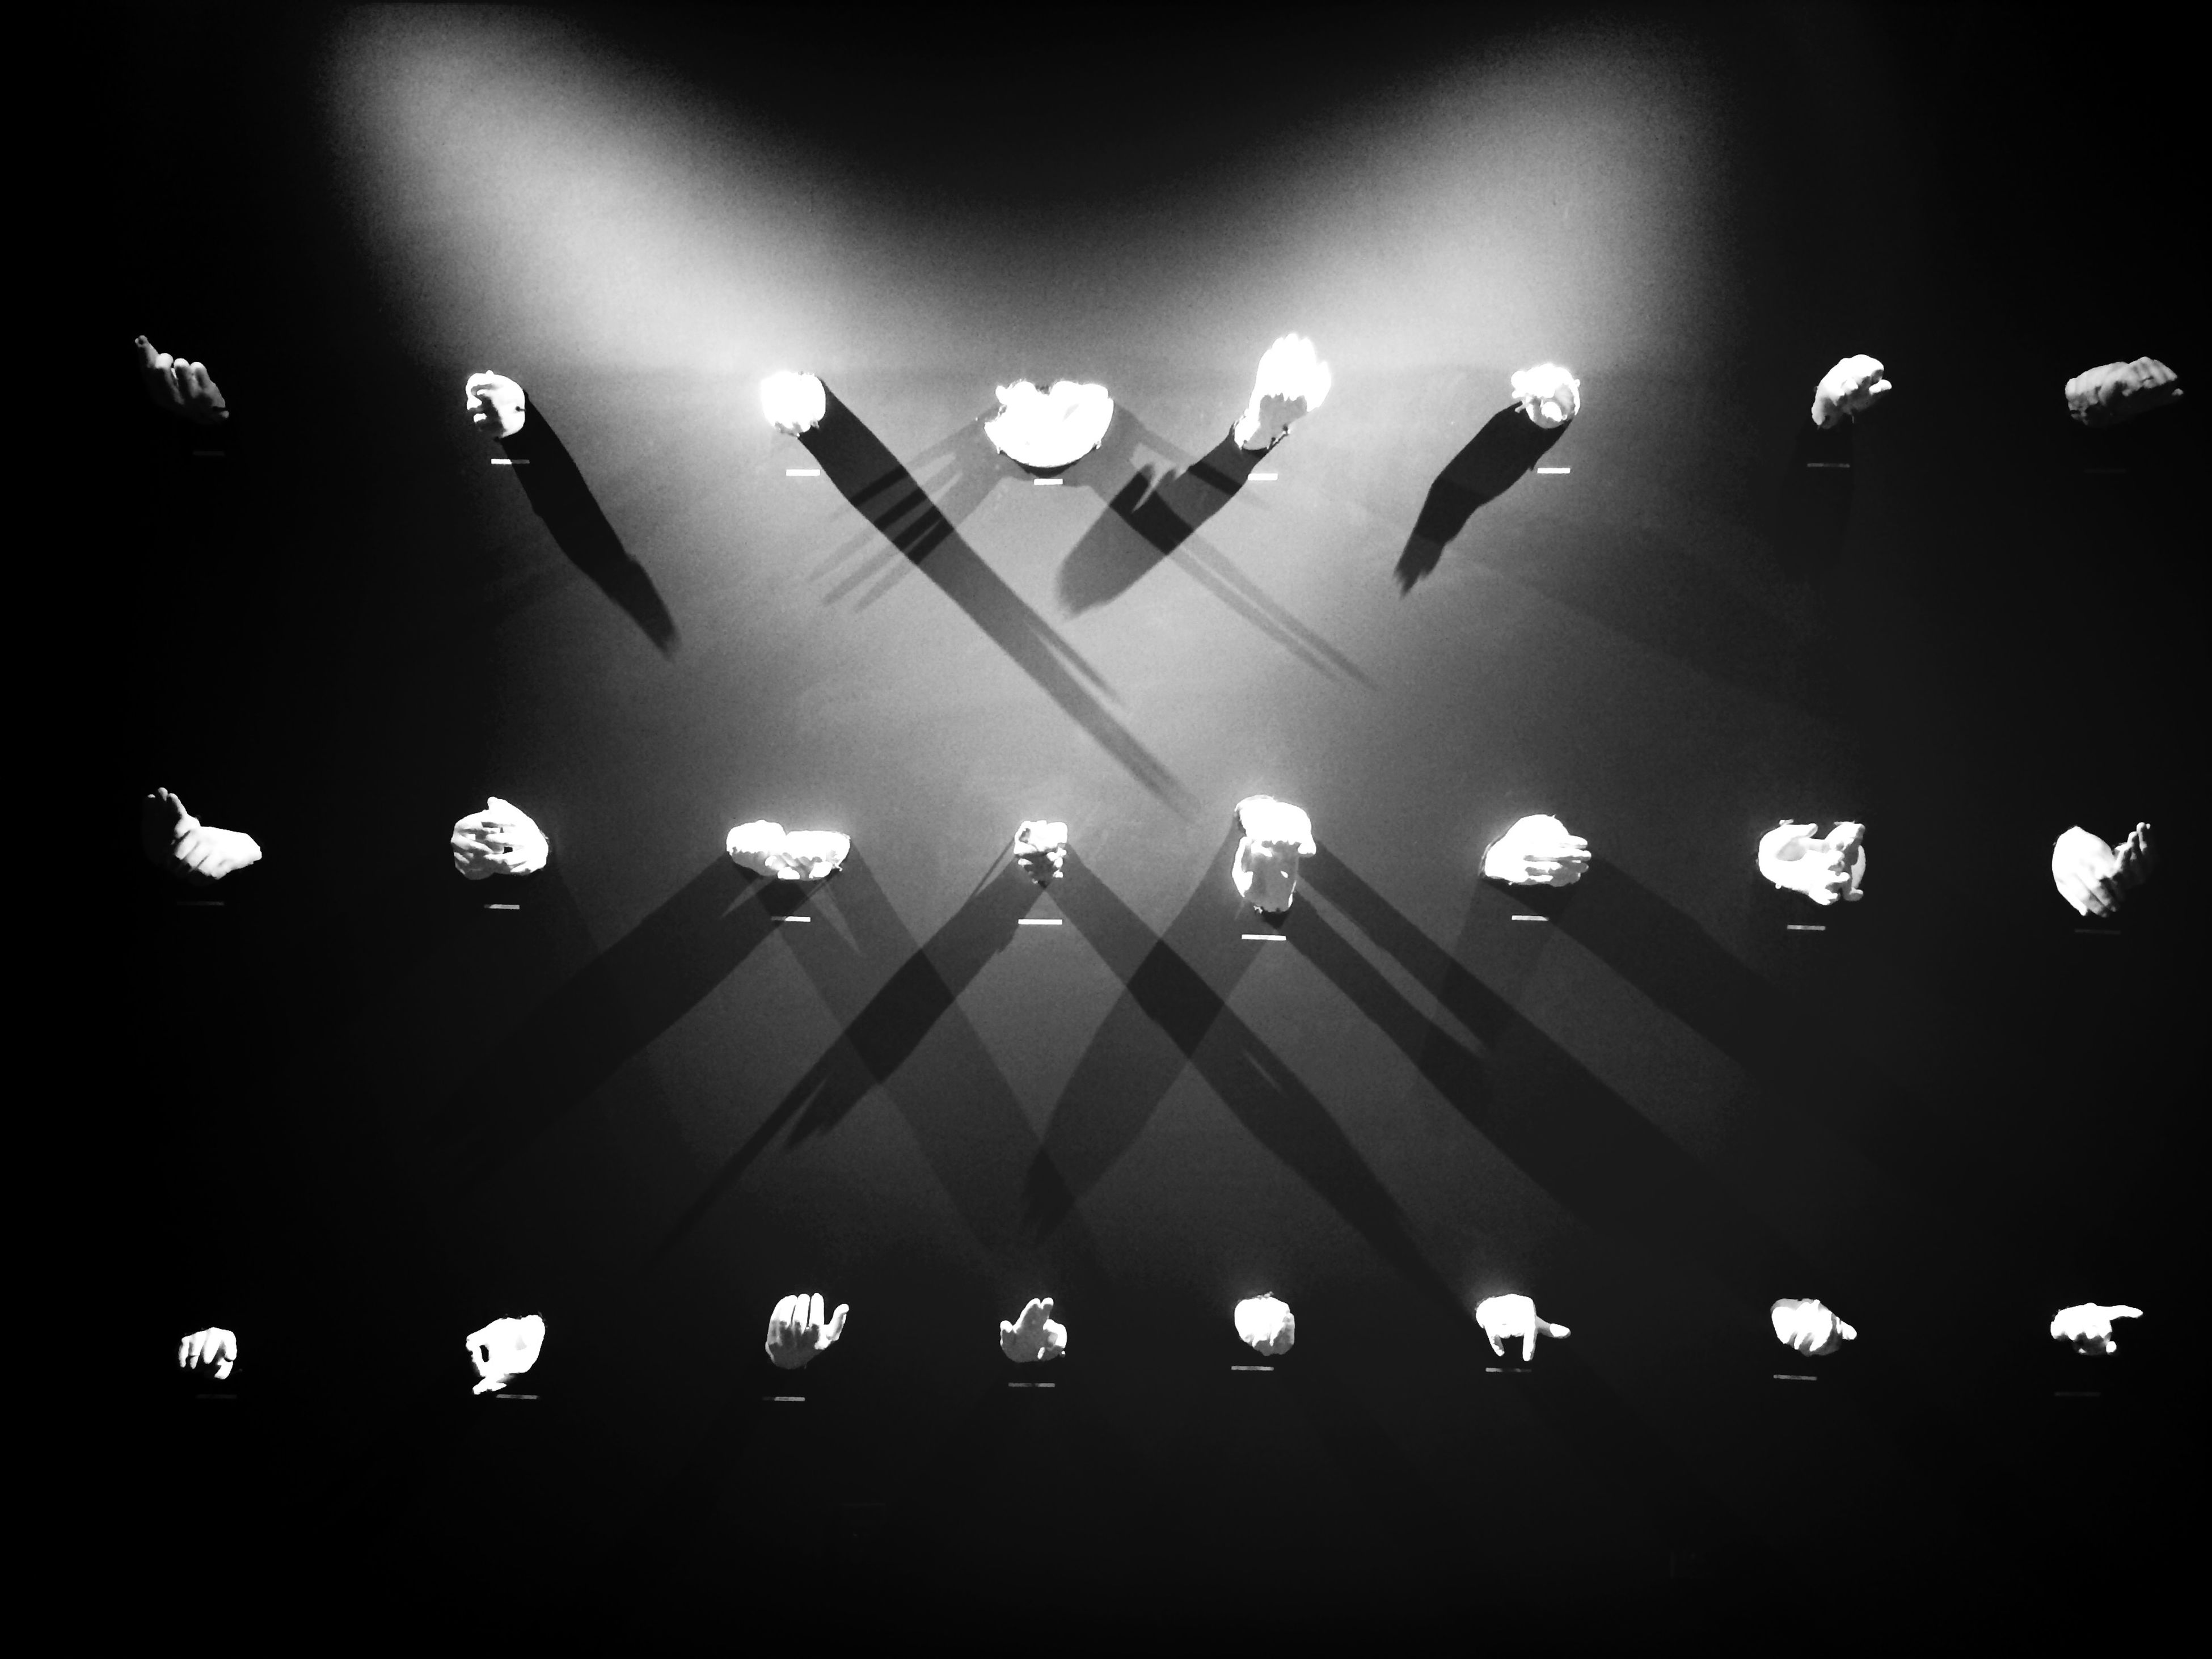 indoors, illuminated, lighting equipment, in a row, ceiling, night, light - natural phenomenon, electricity, electric light, no people, repetition, hanging, airport, order, large group of objects, side by side, technology, glowing, light bulb, arrangement